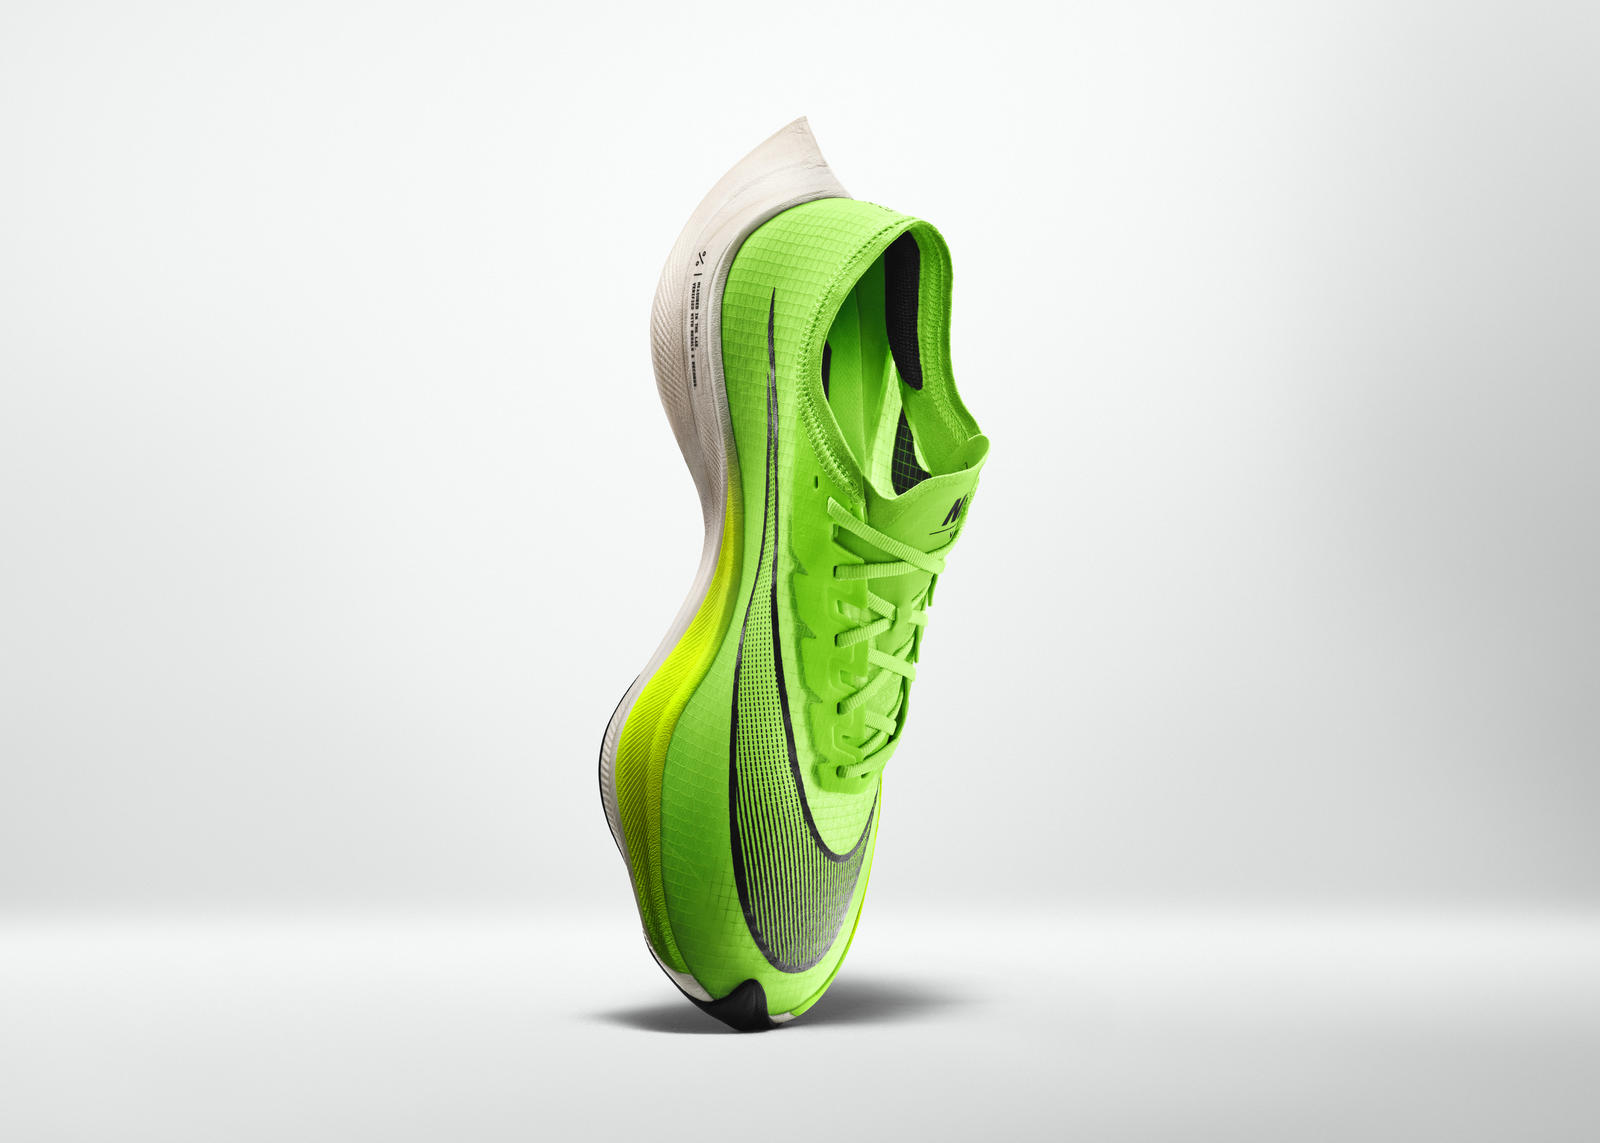 Nike ZoomX Vaporfly Next% Official Images and Release Info  13